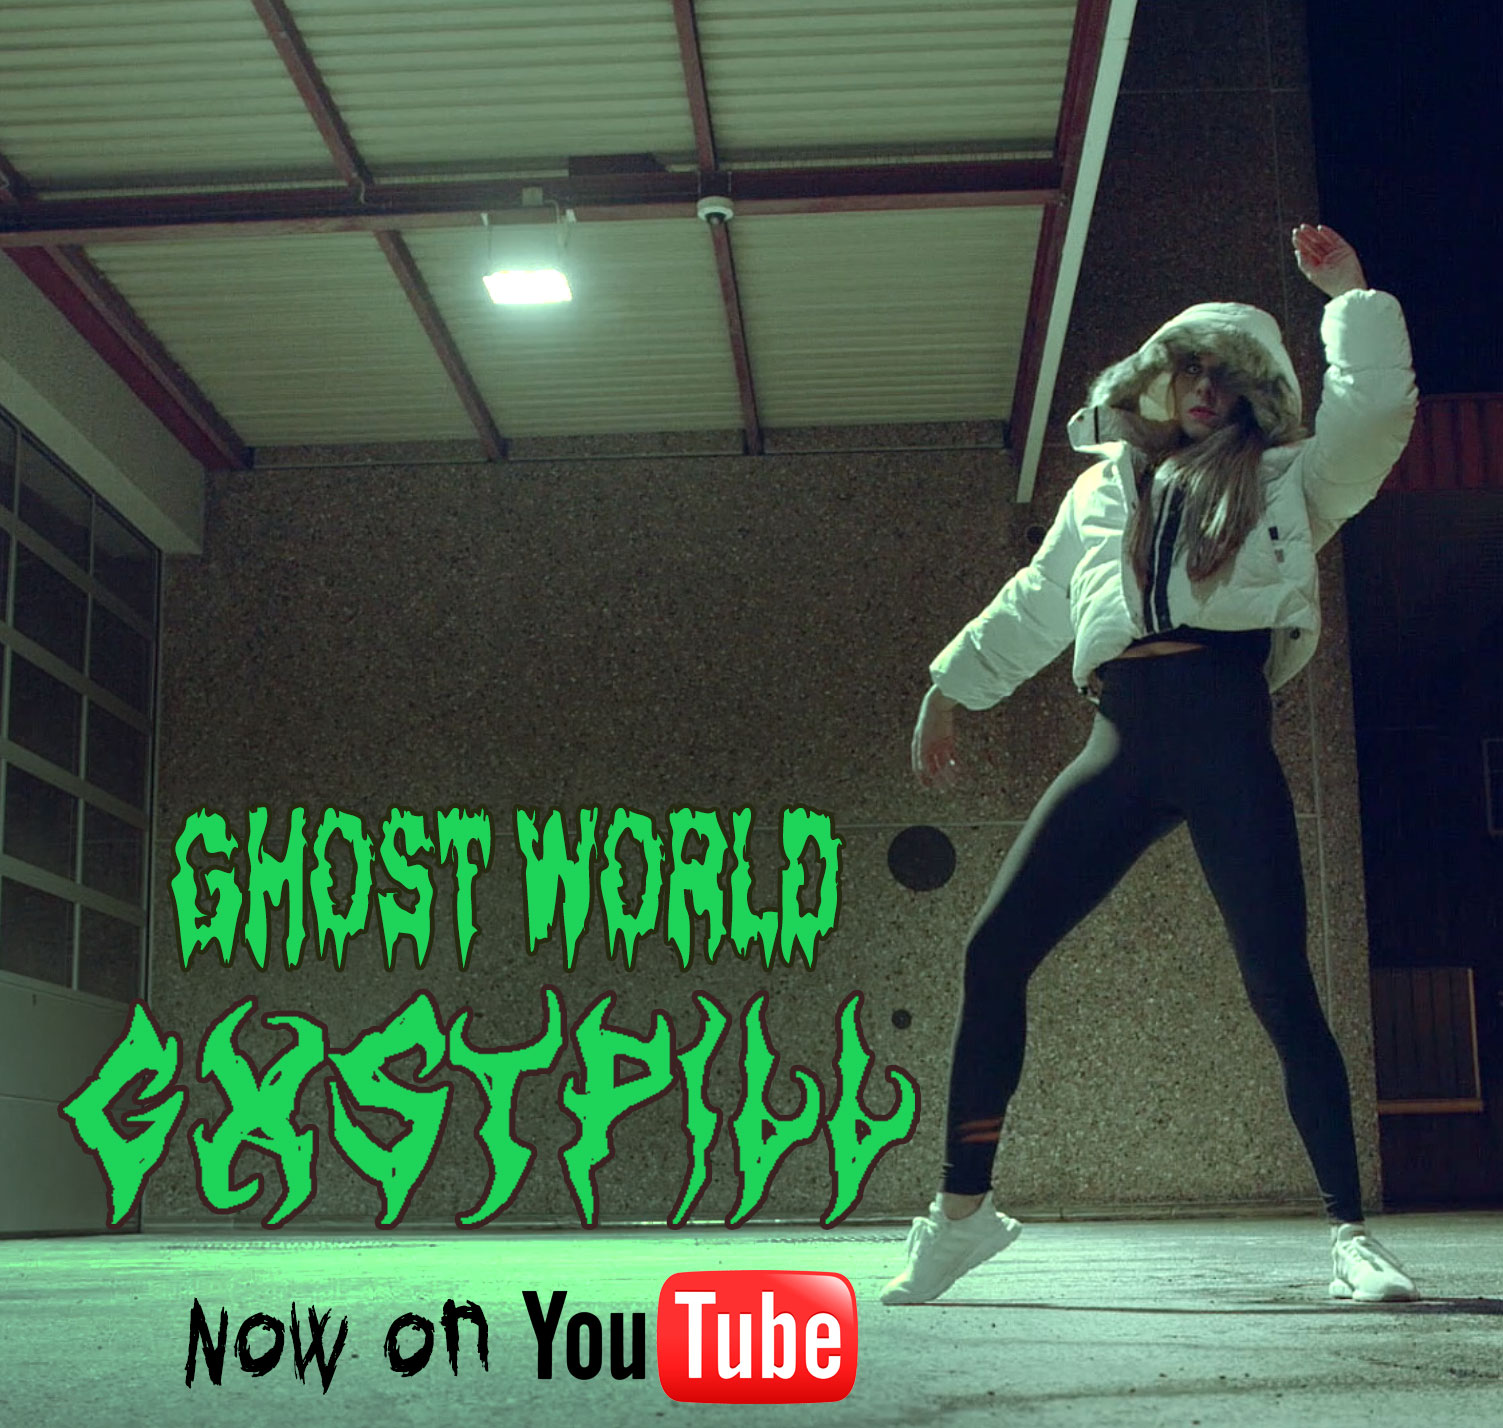 GXSTPILL - Ghost World